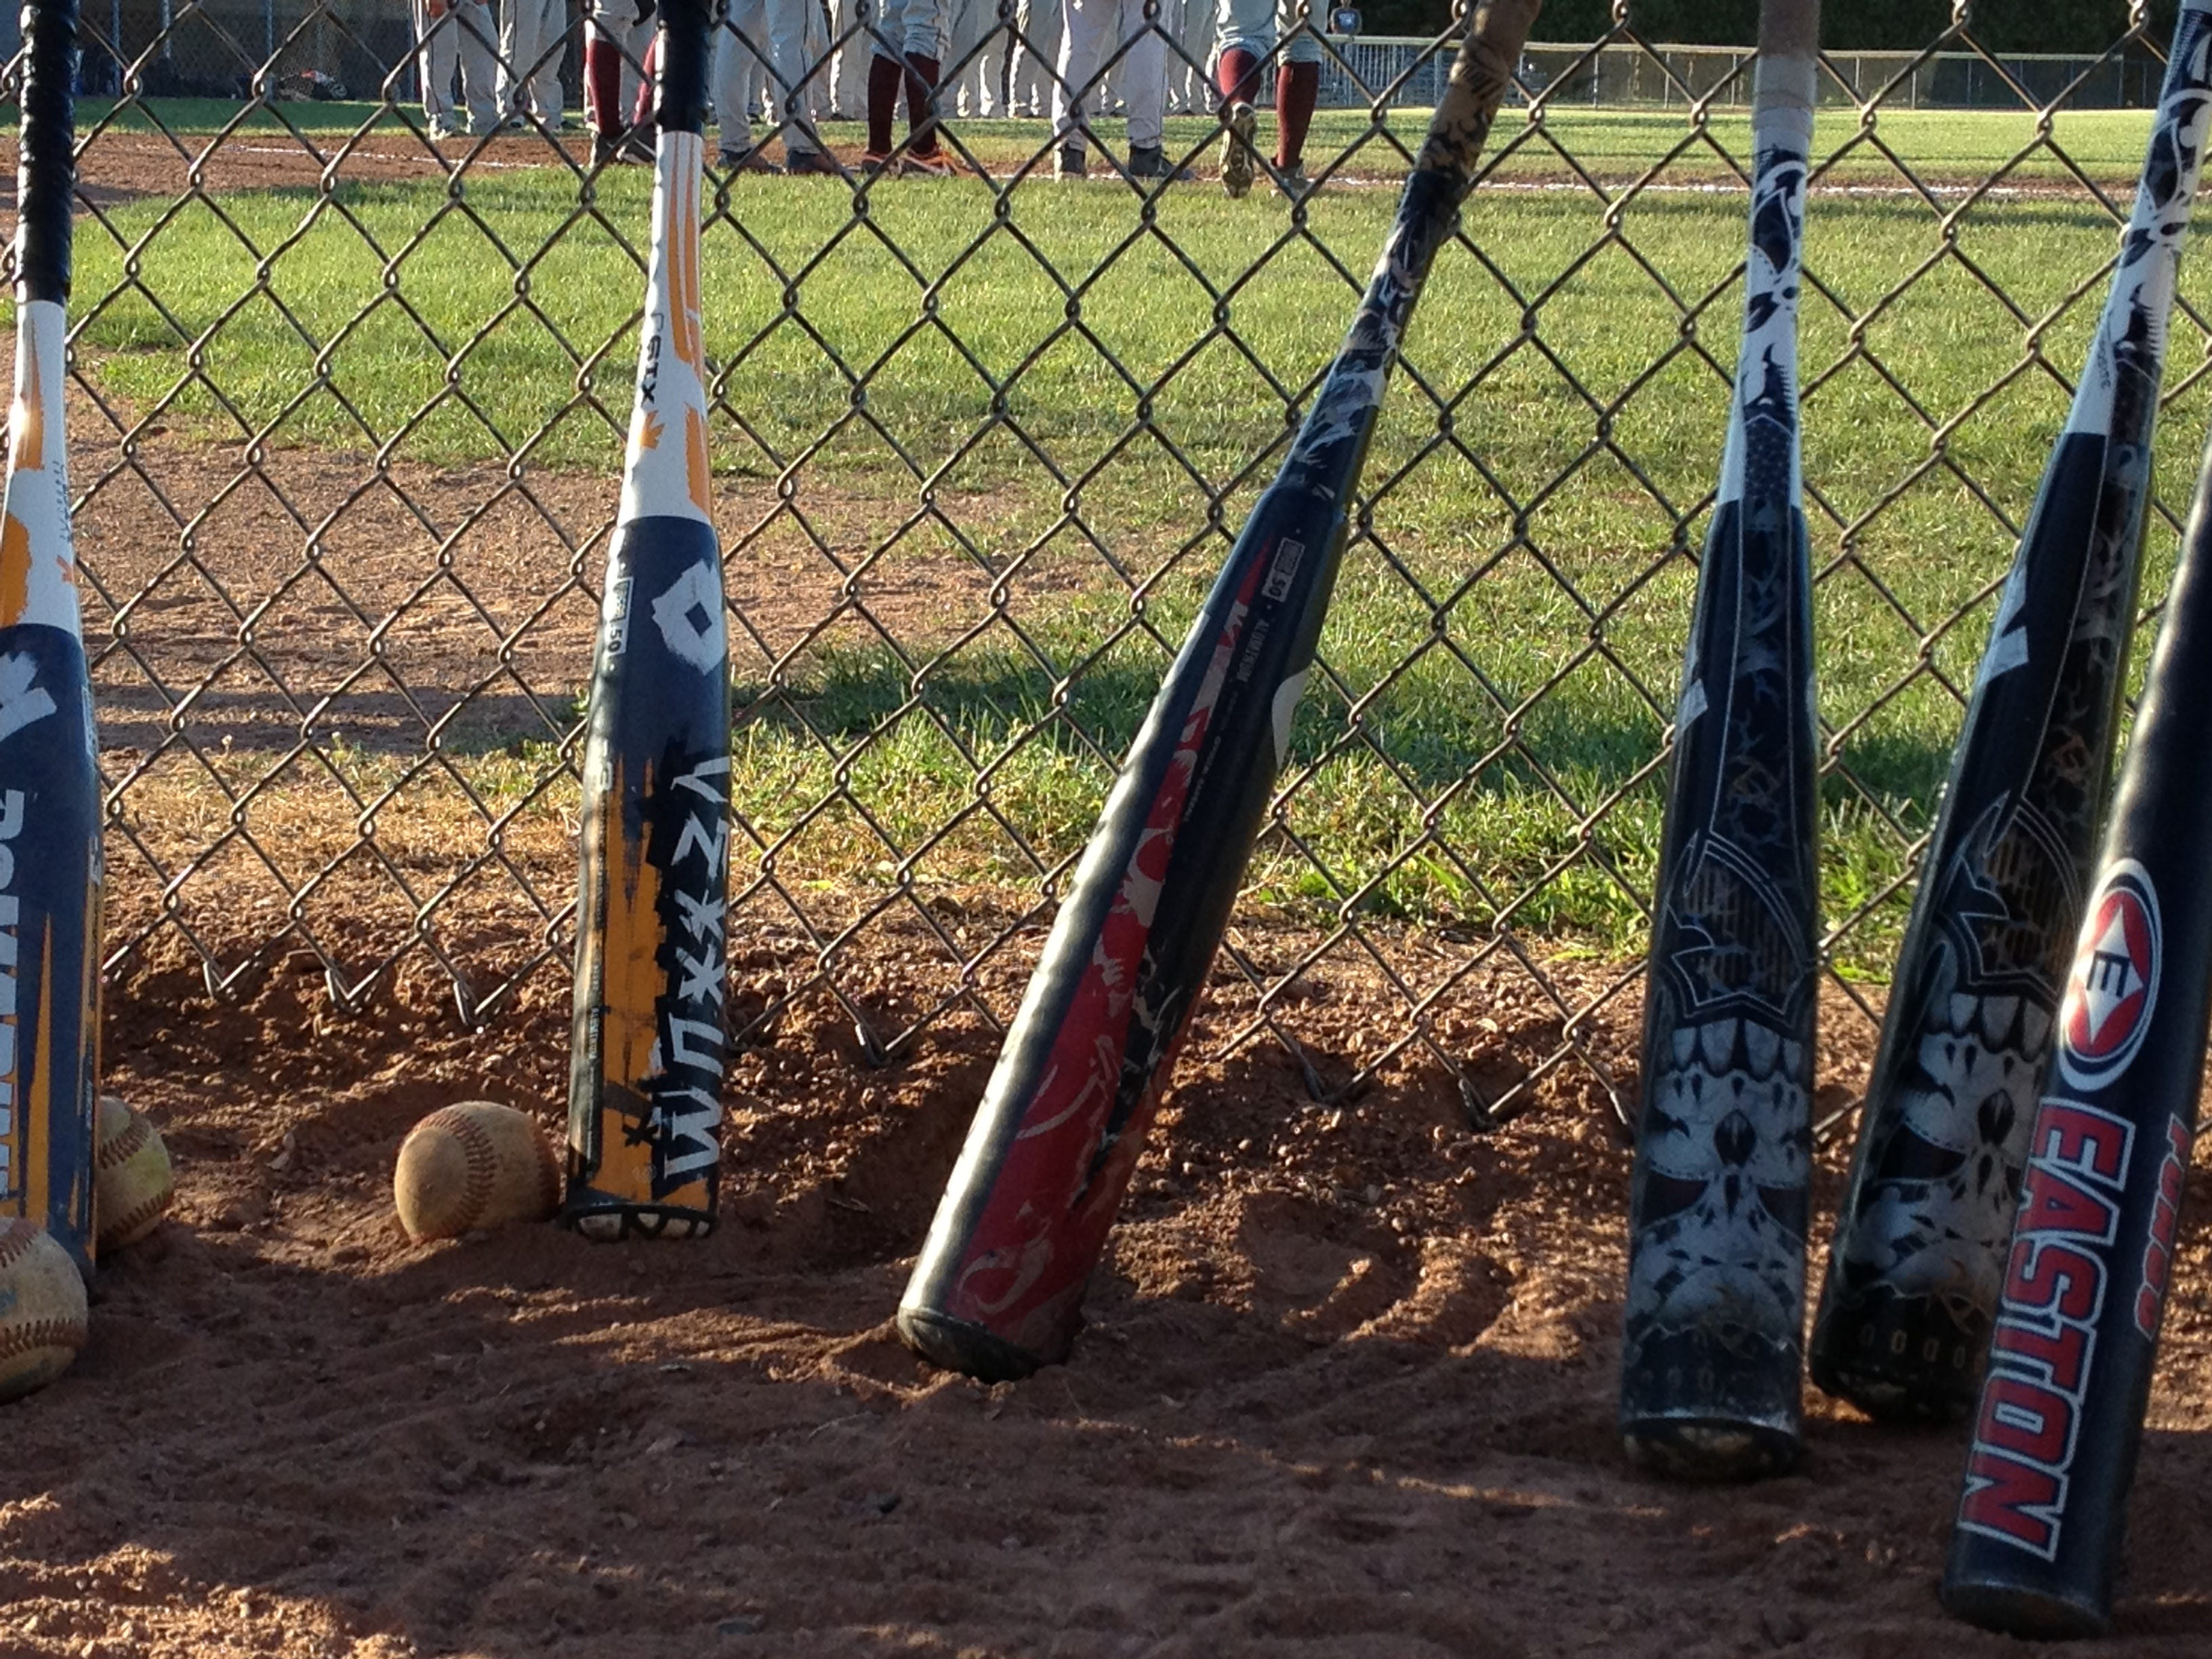 Roncalli's offense kept quiet as Pacelli sweeps doubleheader on Monday.